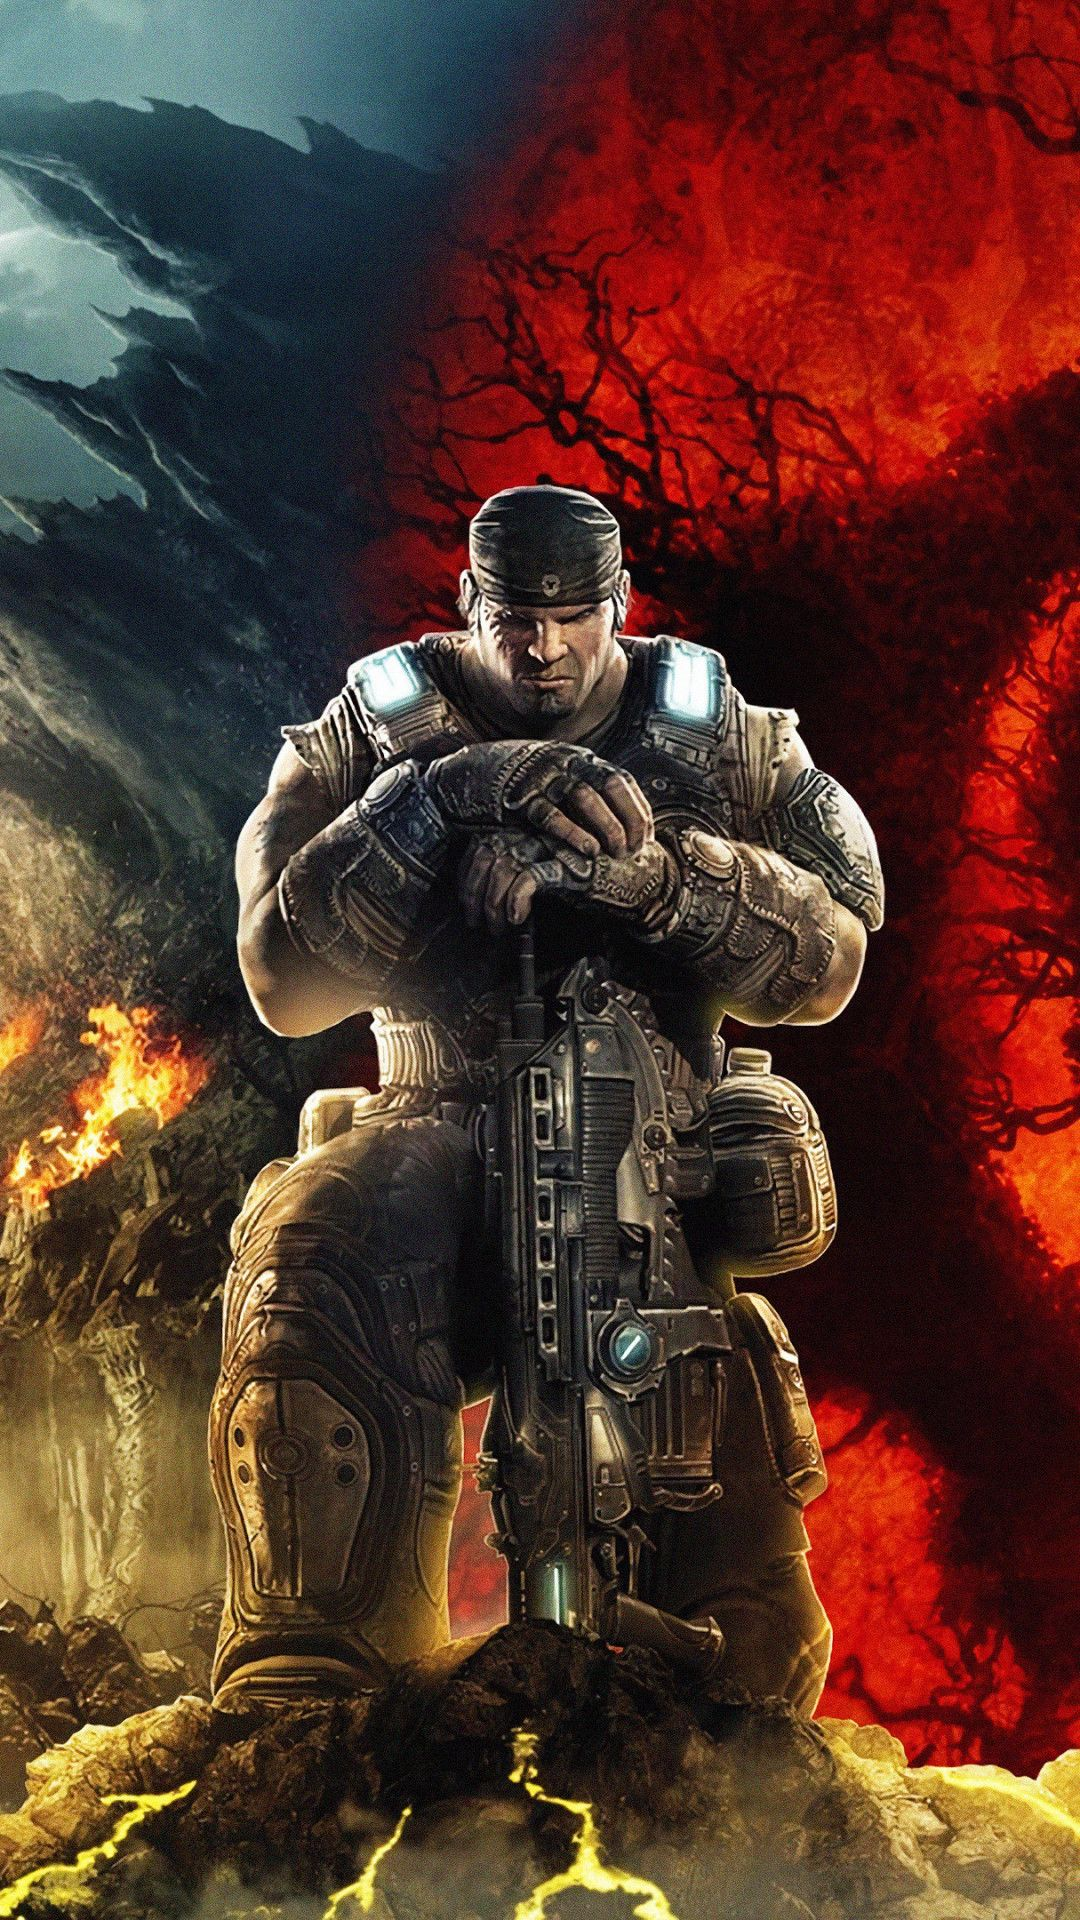 Gears 5 2019 4k Mobile Wallpaper (iPhone, Android, Samsung